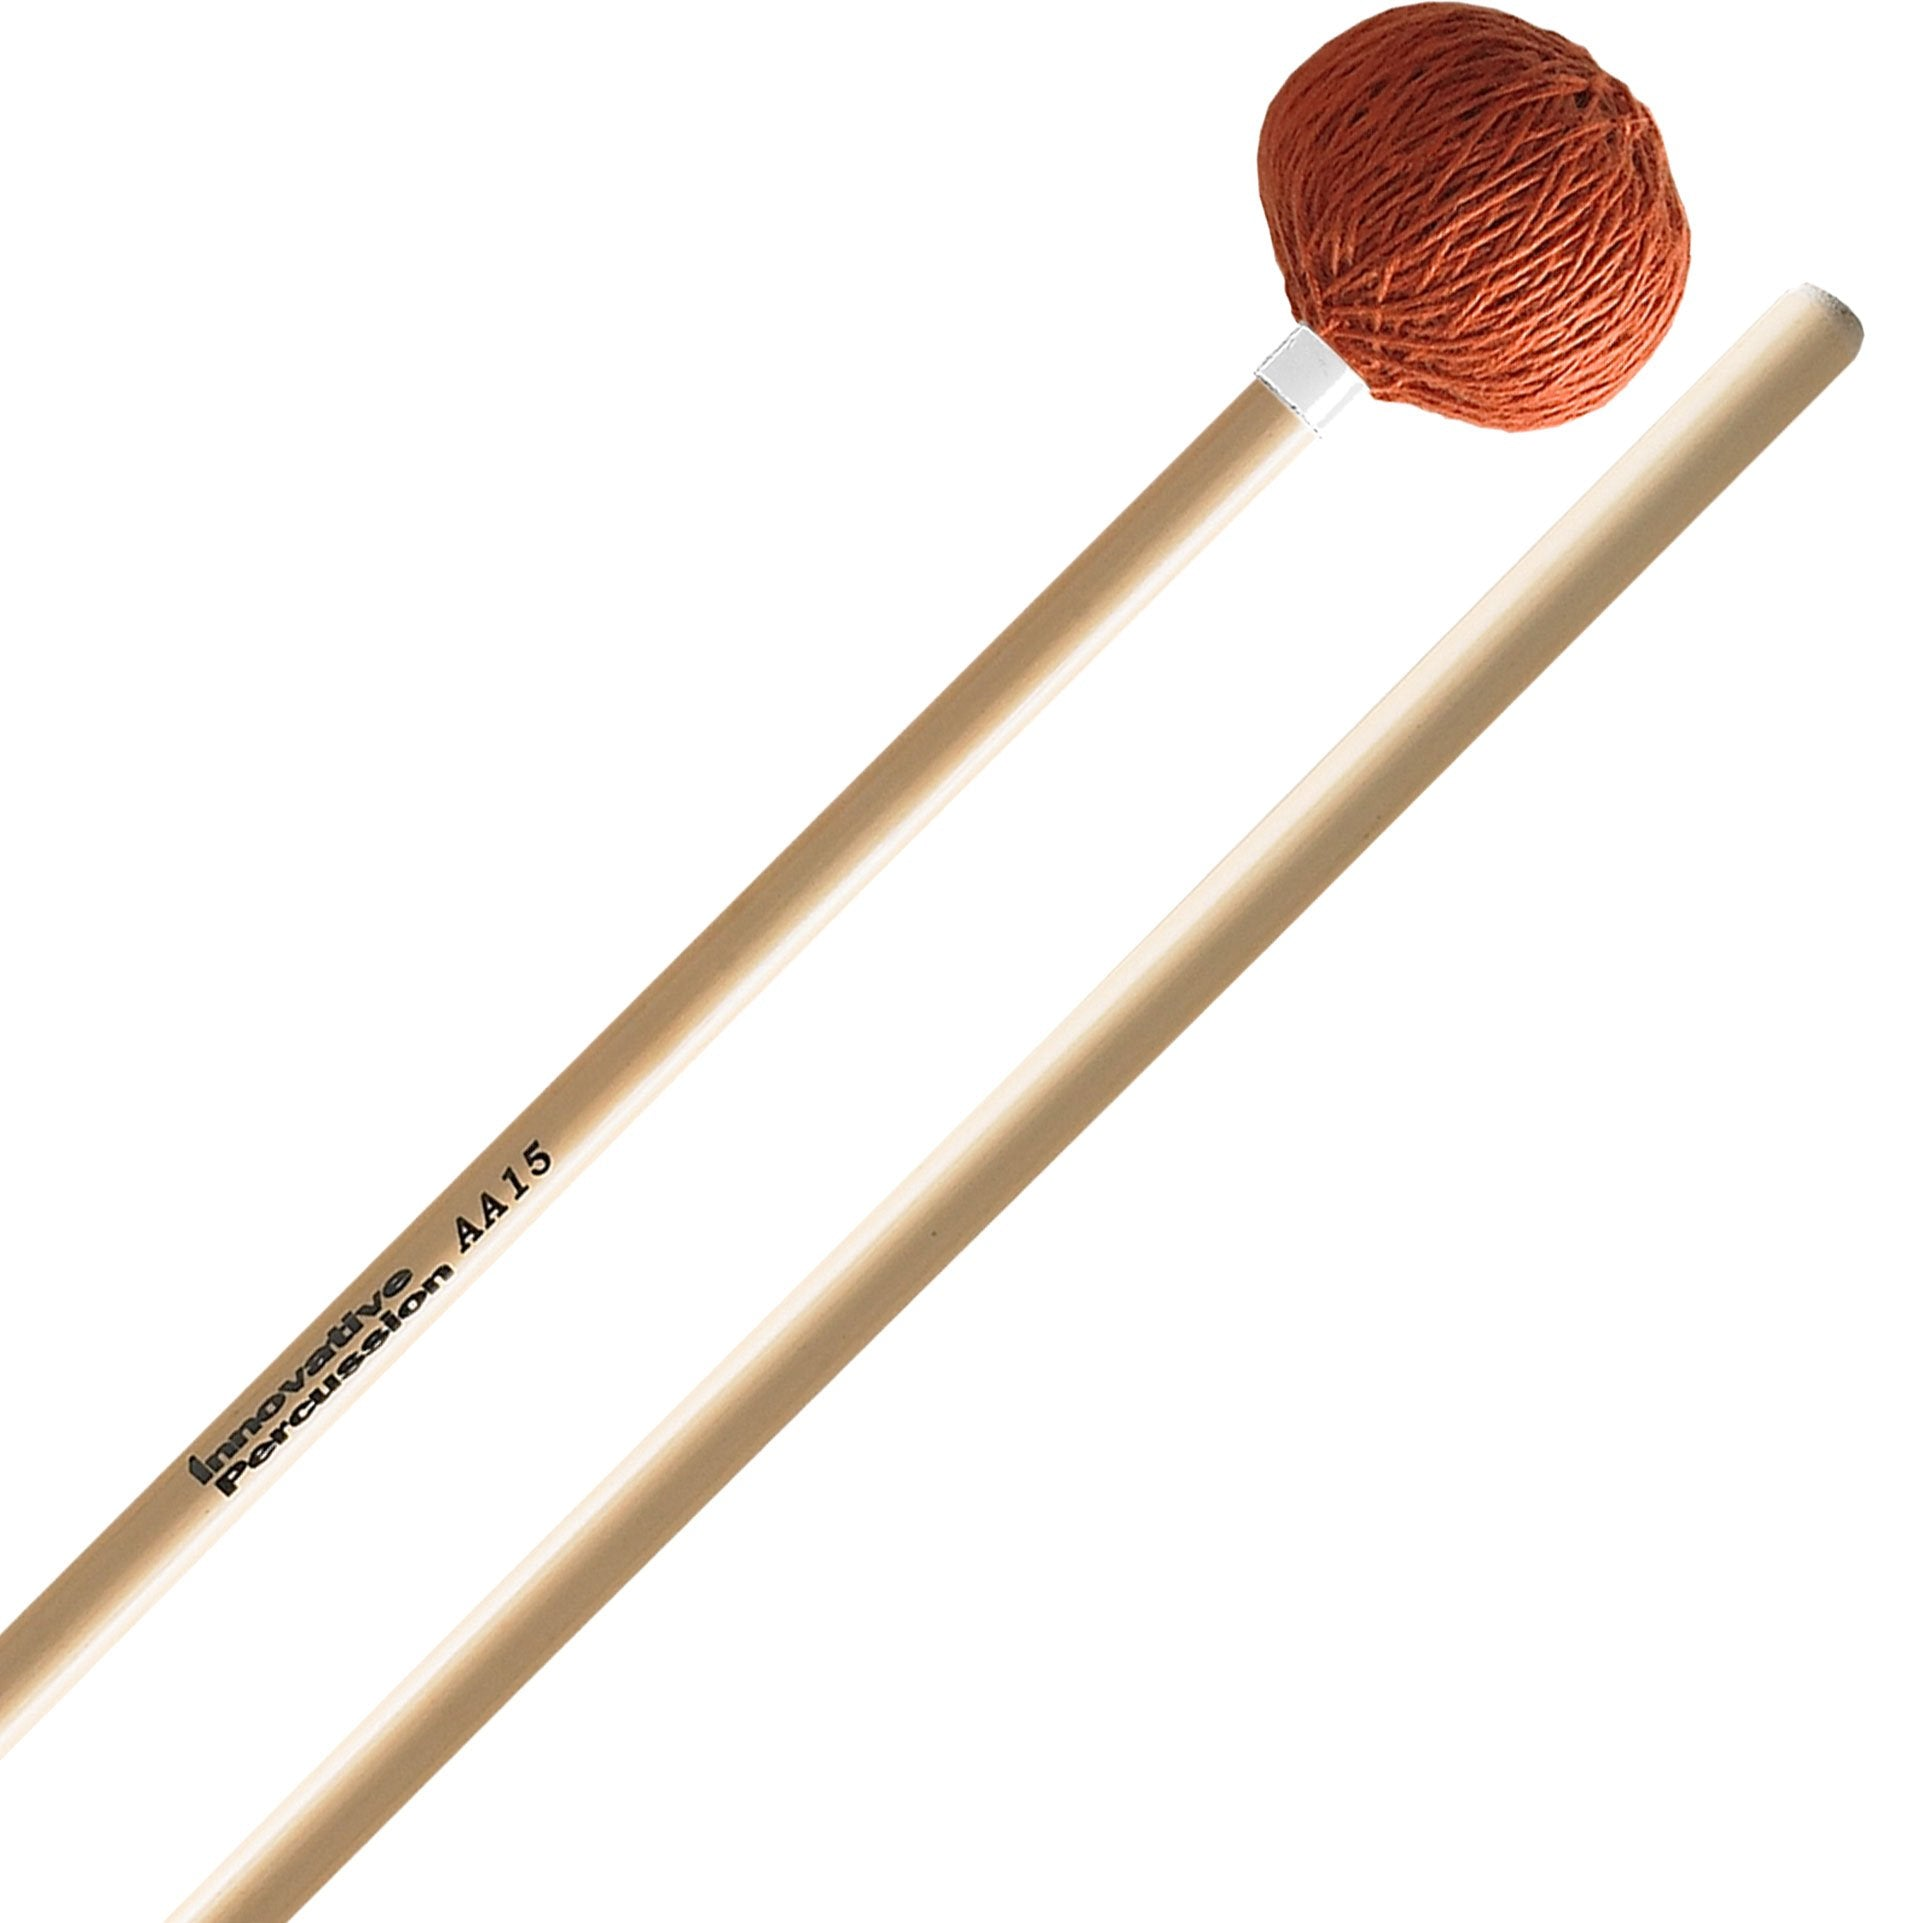 Innovative Percussion - Anders Åstrand Rattan Series Concert Vibraphone/Marimba Mallets-Percussion-Innovative Percussion-AA15 Soft-Music Elements